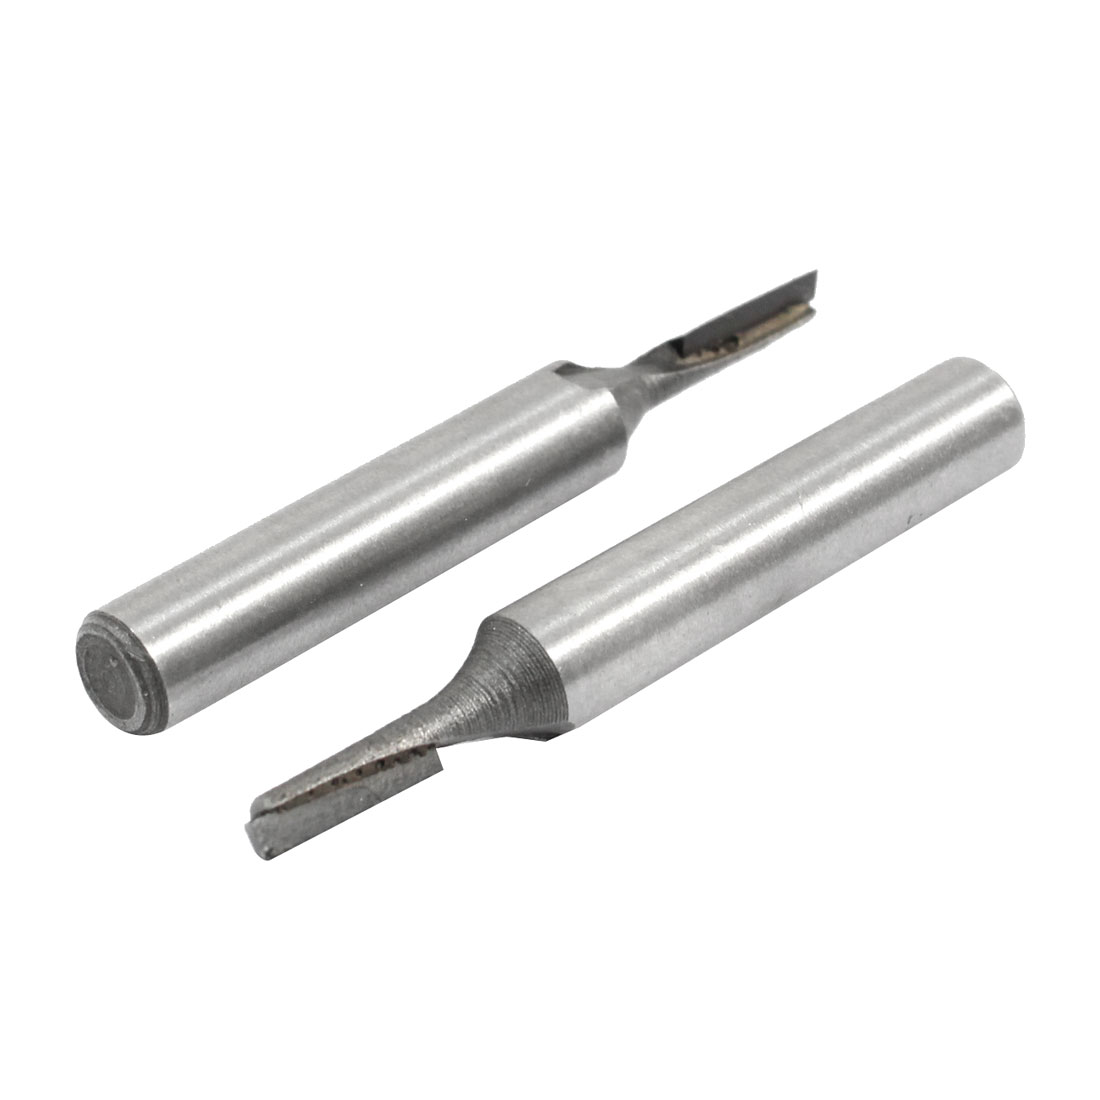 "1/4"" Shank 1/8"" Cutting Dia One Flute Straight Router Bit Tool 2 Pcs"